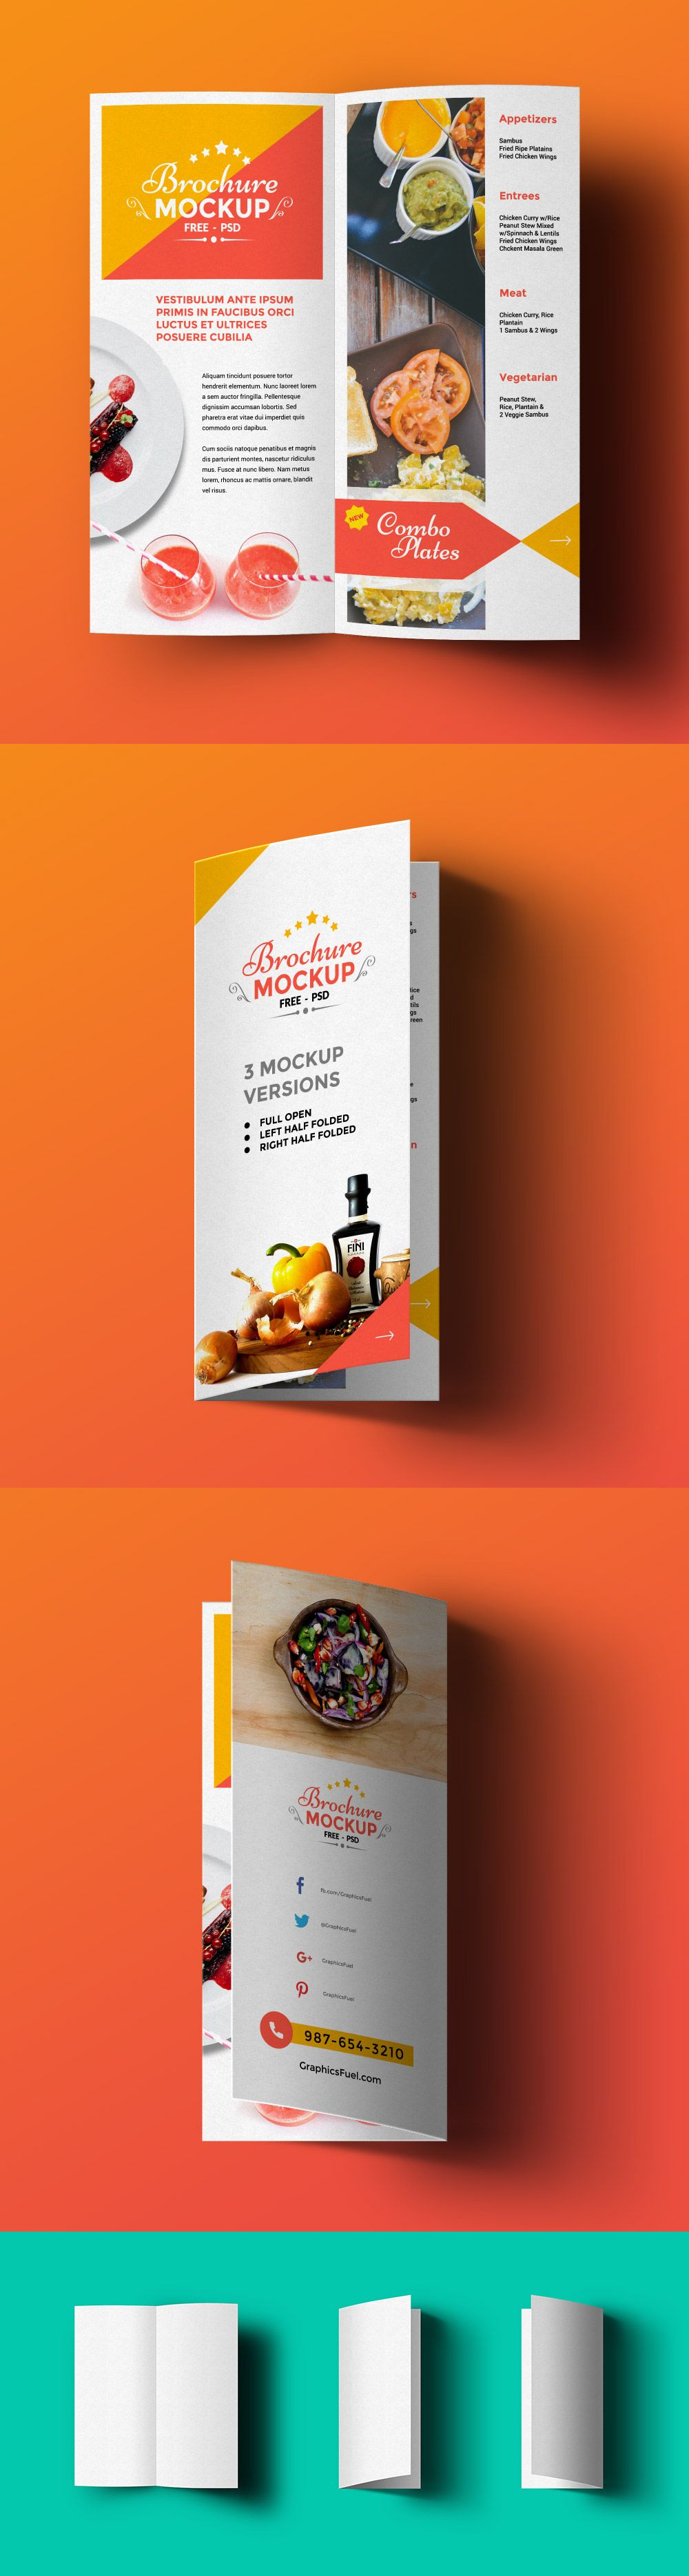 Free bi fold brochure mockup psd 62 1 mb graphicsfuel for Free photoshop brochure template